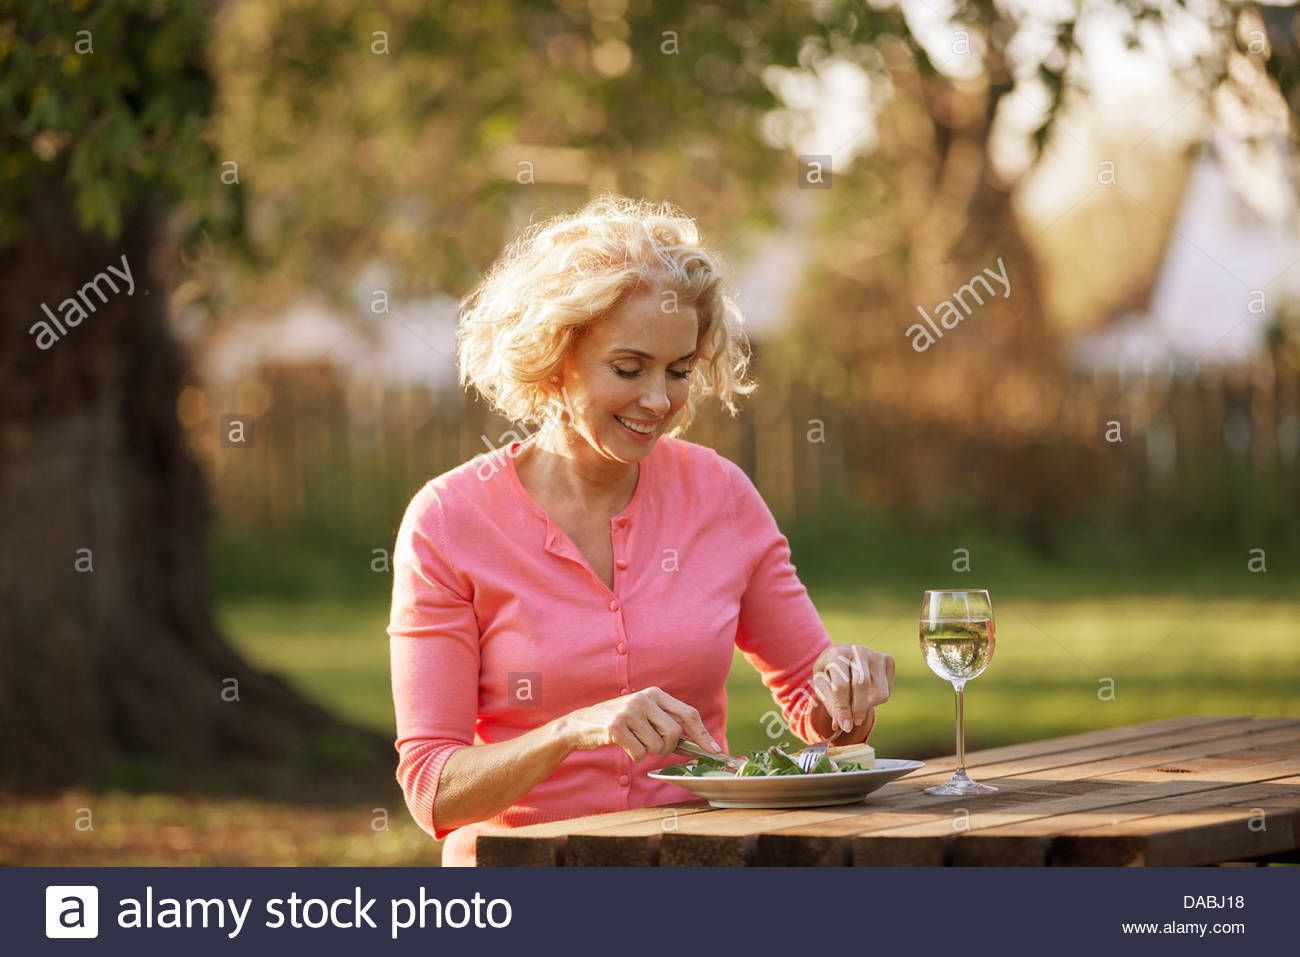 A mature woman sitting at a garden bench eating a meal - Stock Image